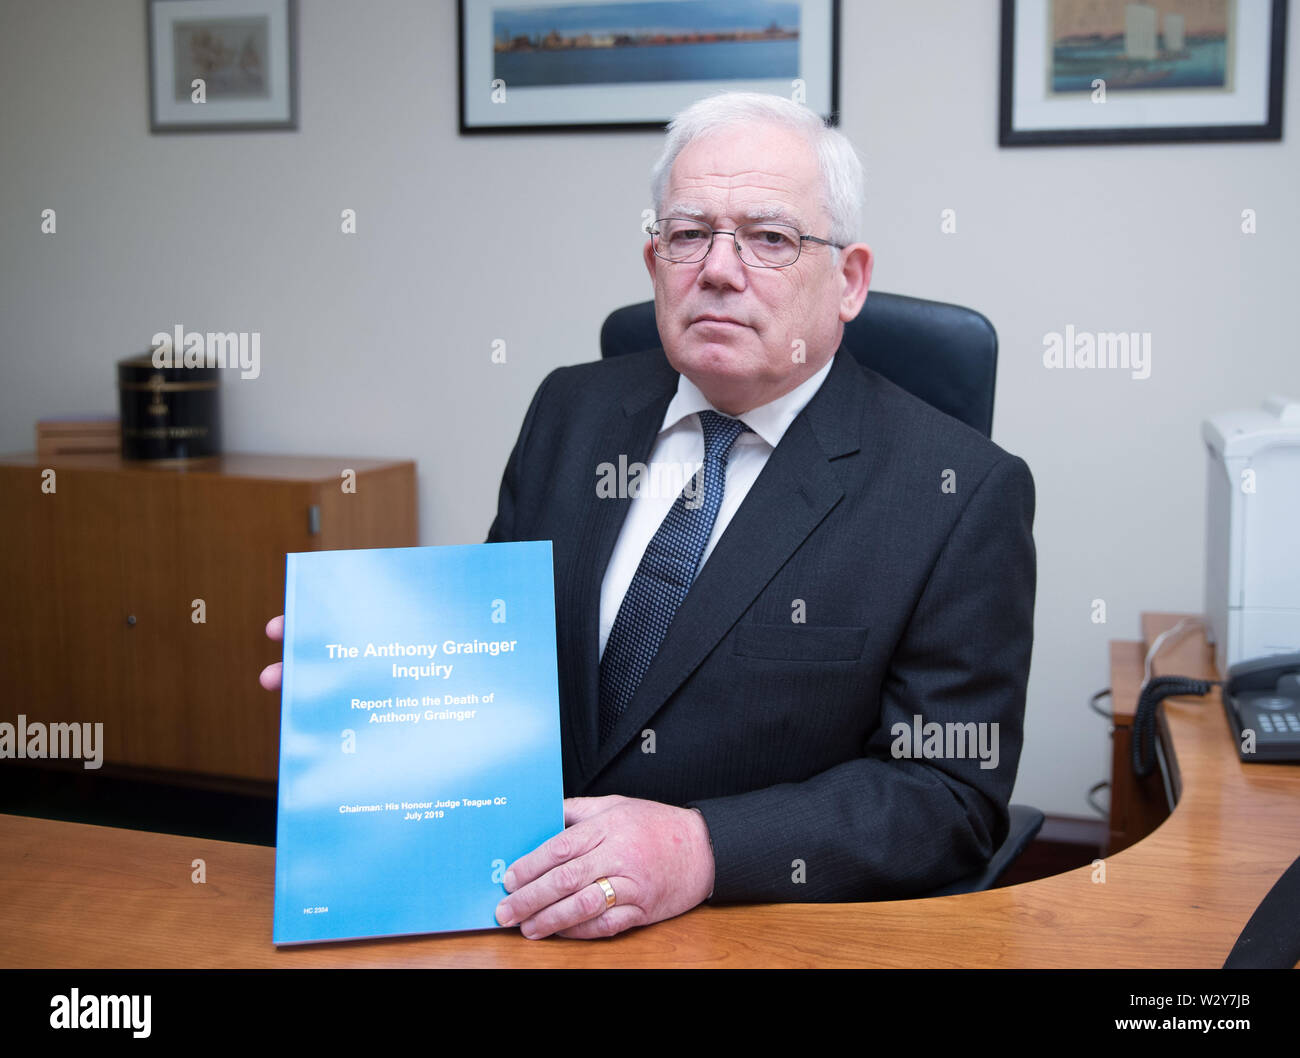 Chairman of the inquiry Judge Thomas Teague QC at Liverpool Crown Court with his report of a public inquiry into the death of Anthony Grainger ahead of its publication. Grainger, 36, from Bolton, was shot by a Greater Manchester Police firearms officer through the windscreen of a stolen Audi in a car park in Culcheth, Cheshire, on March 3 2012. - Stock Image